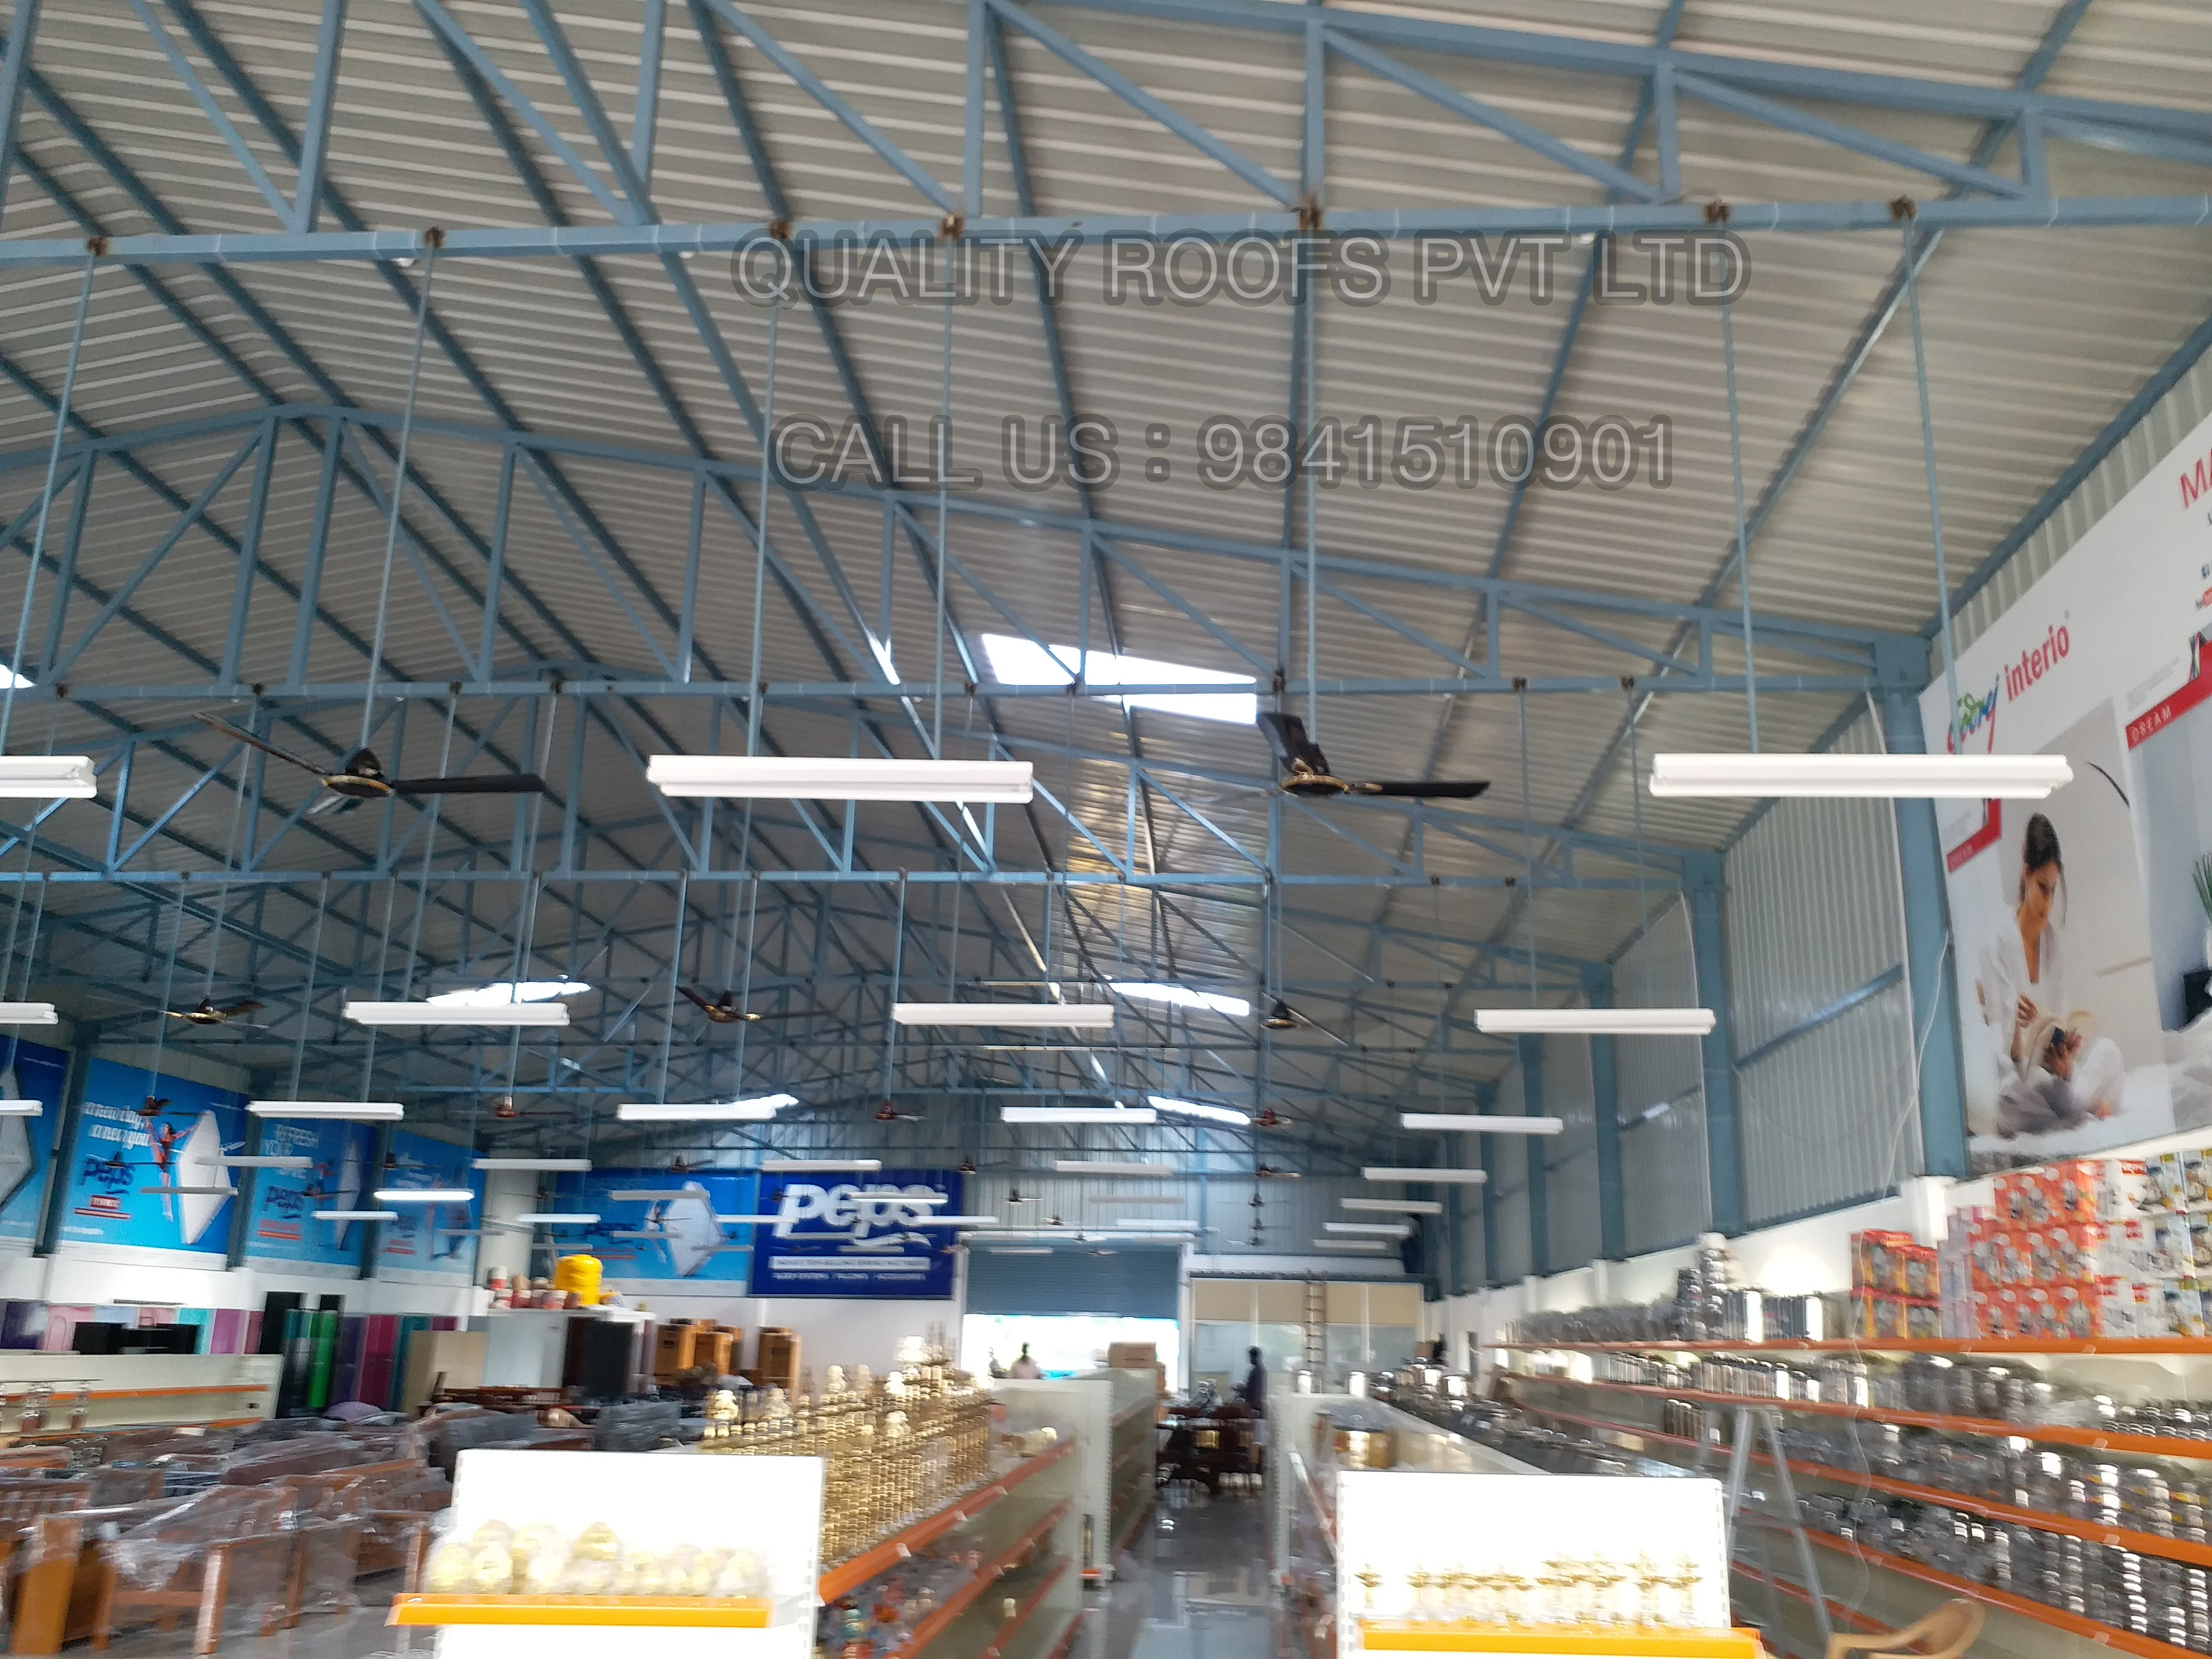 Quality Roofs Pvt Ltd, Industrial Roofing Contractors In Chennai,Best Roofing Contractors In Chennai,Metal Roofing Contractors In Chennai,Roofing Contractors In Chennai,Industrial Fabricators In Chennai